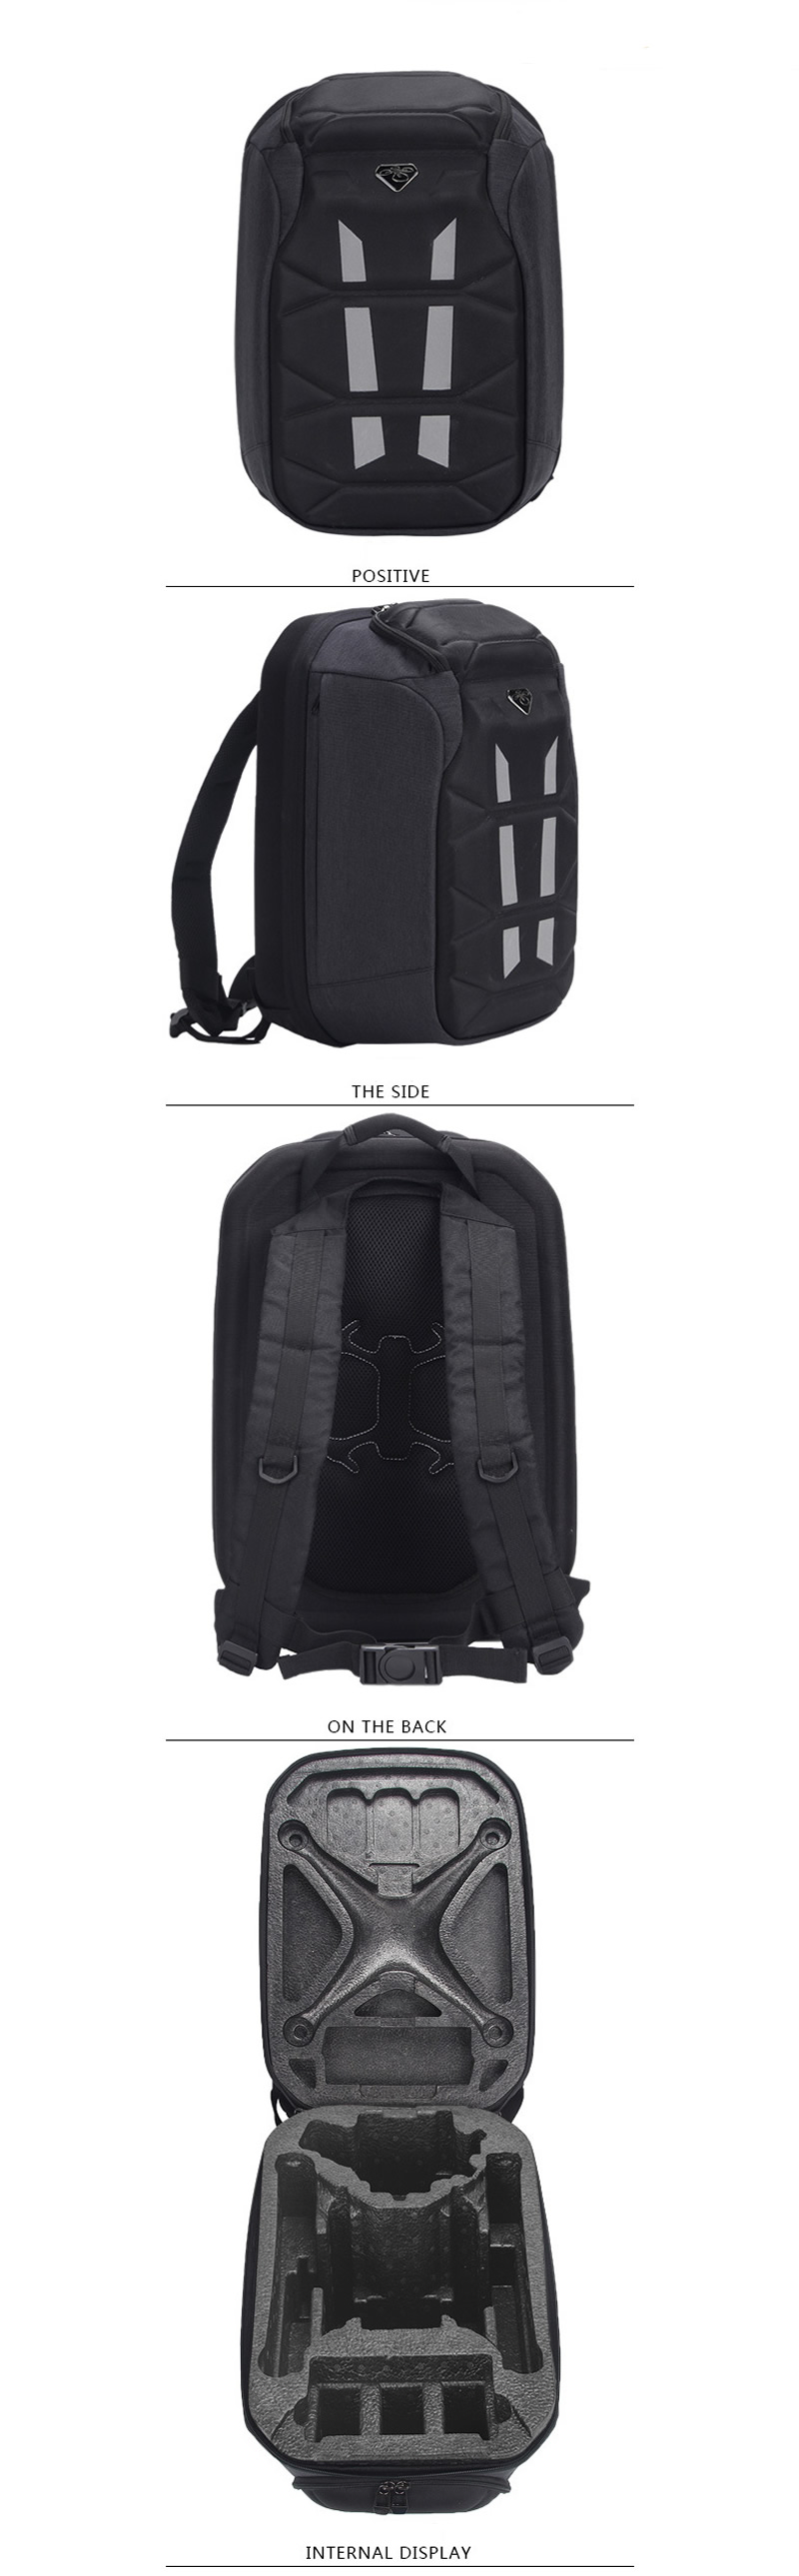 DJI phantom3 PHANTOM4 Pro Series Universal Backpack Drone Logo Storage Bag for dji Drone Quadcopter Fashion Protection Knapsack